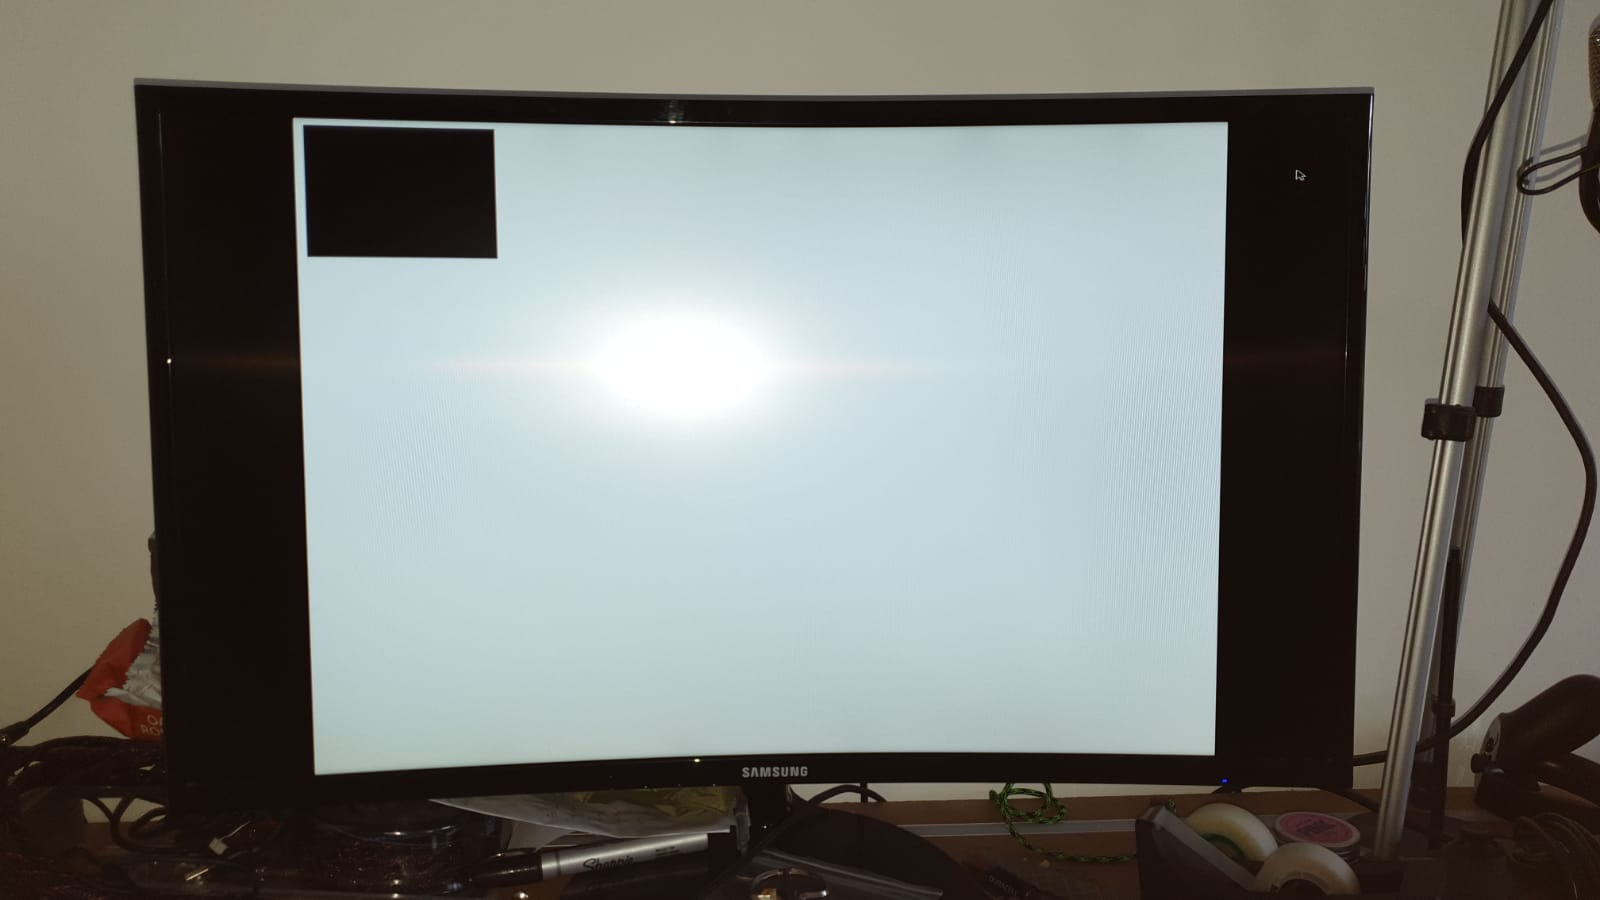 2nd monitor image